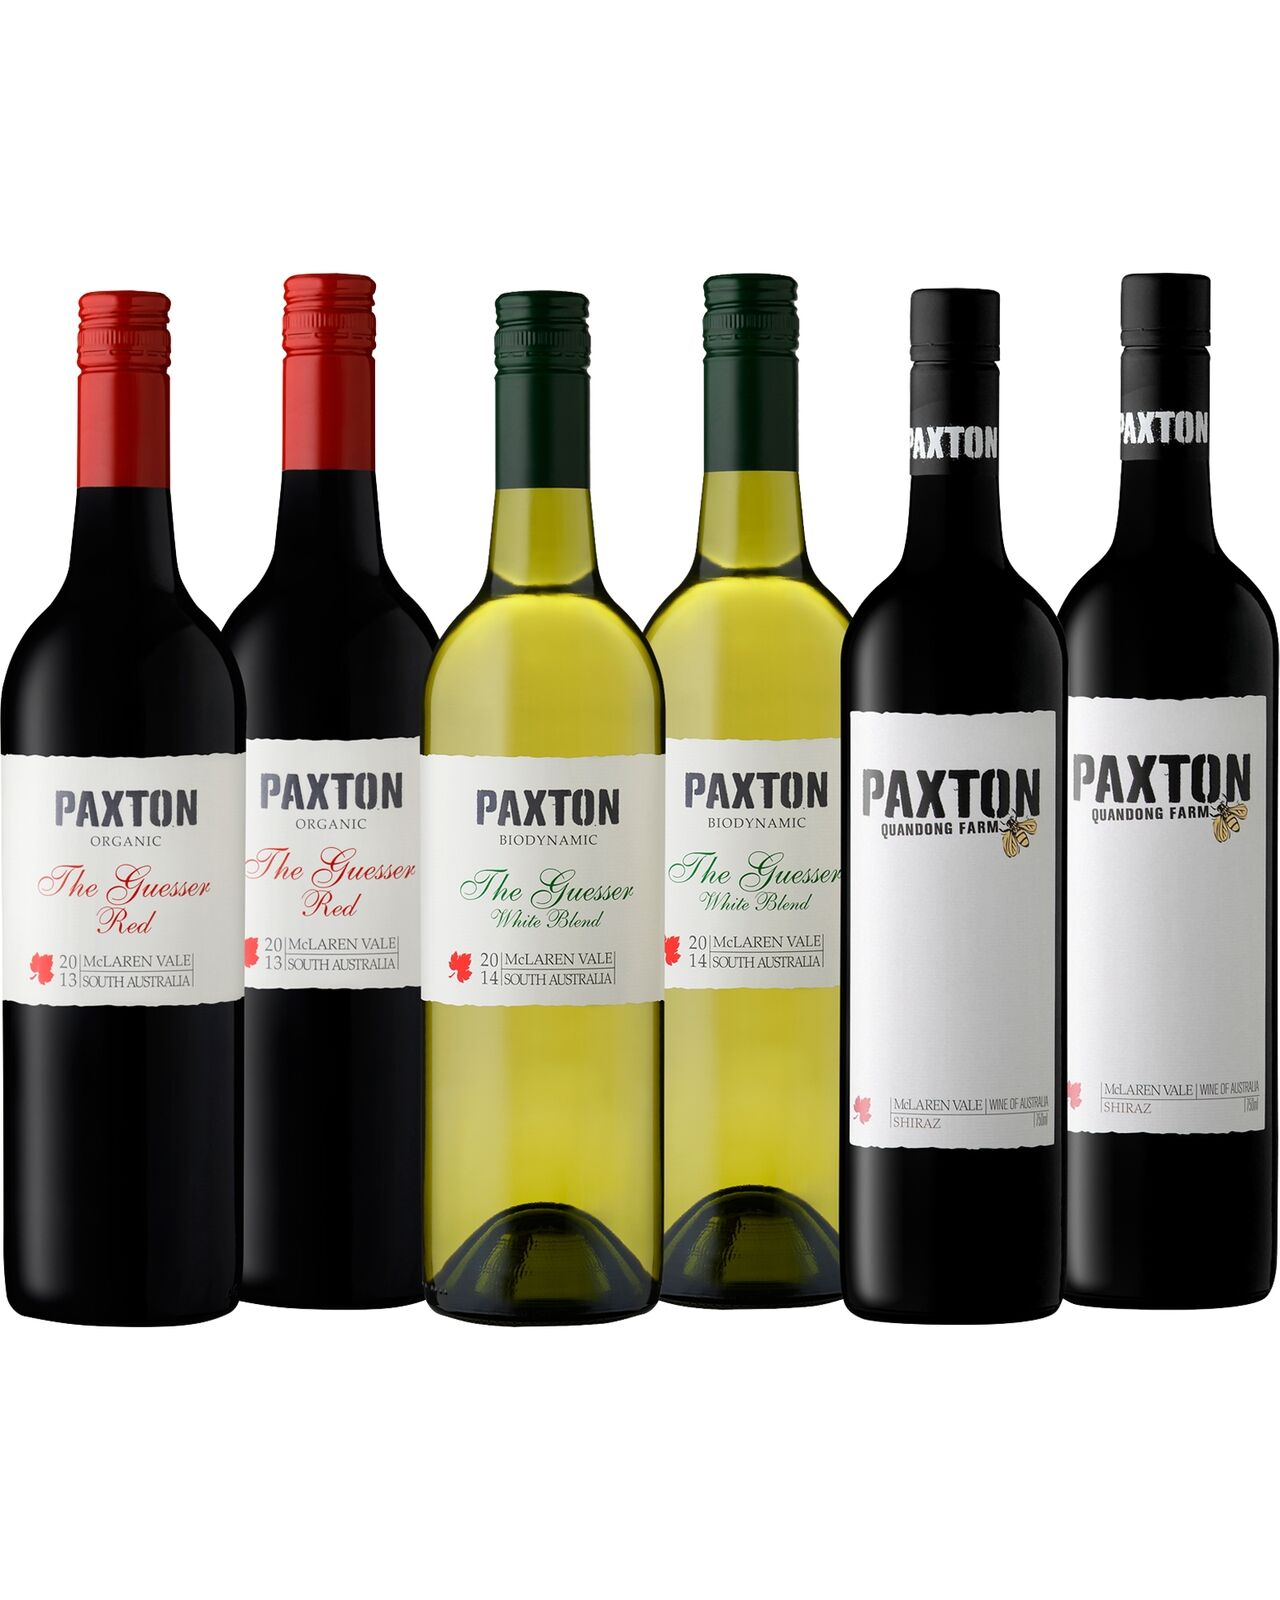 Paxton Mixed Organic Six Pack pack of 6 Wine McLaren Vale